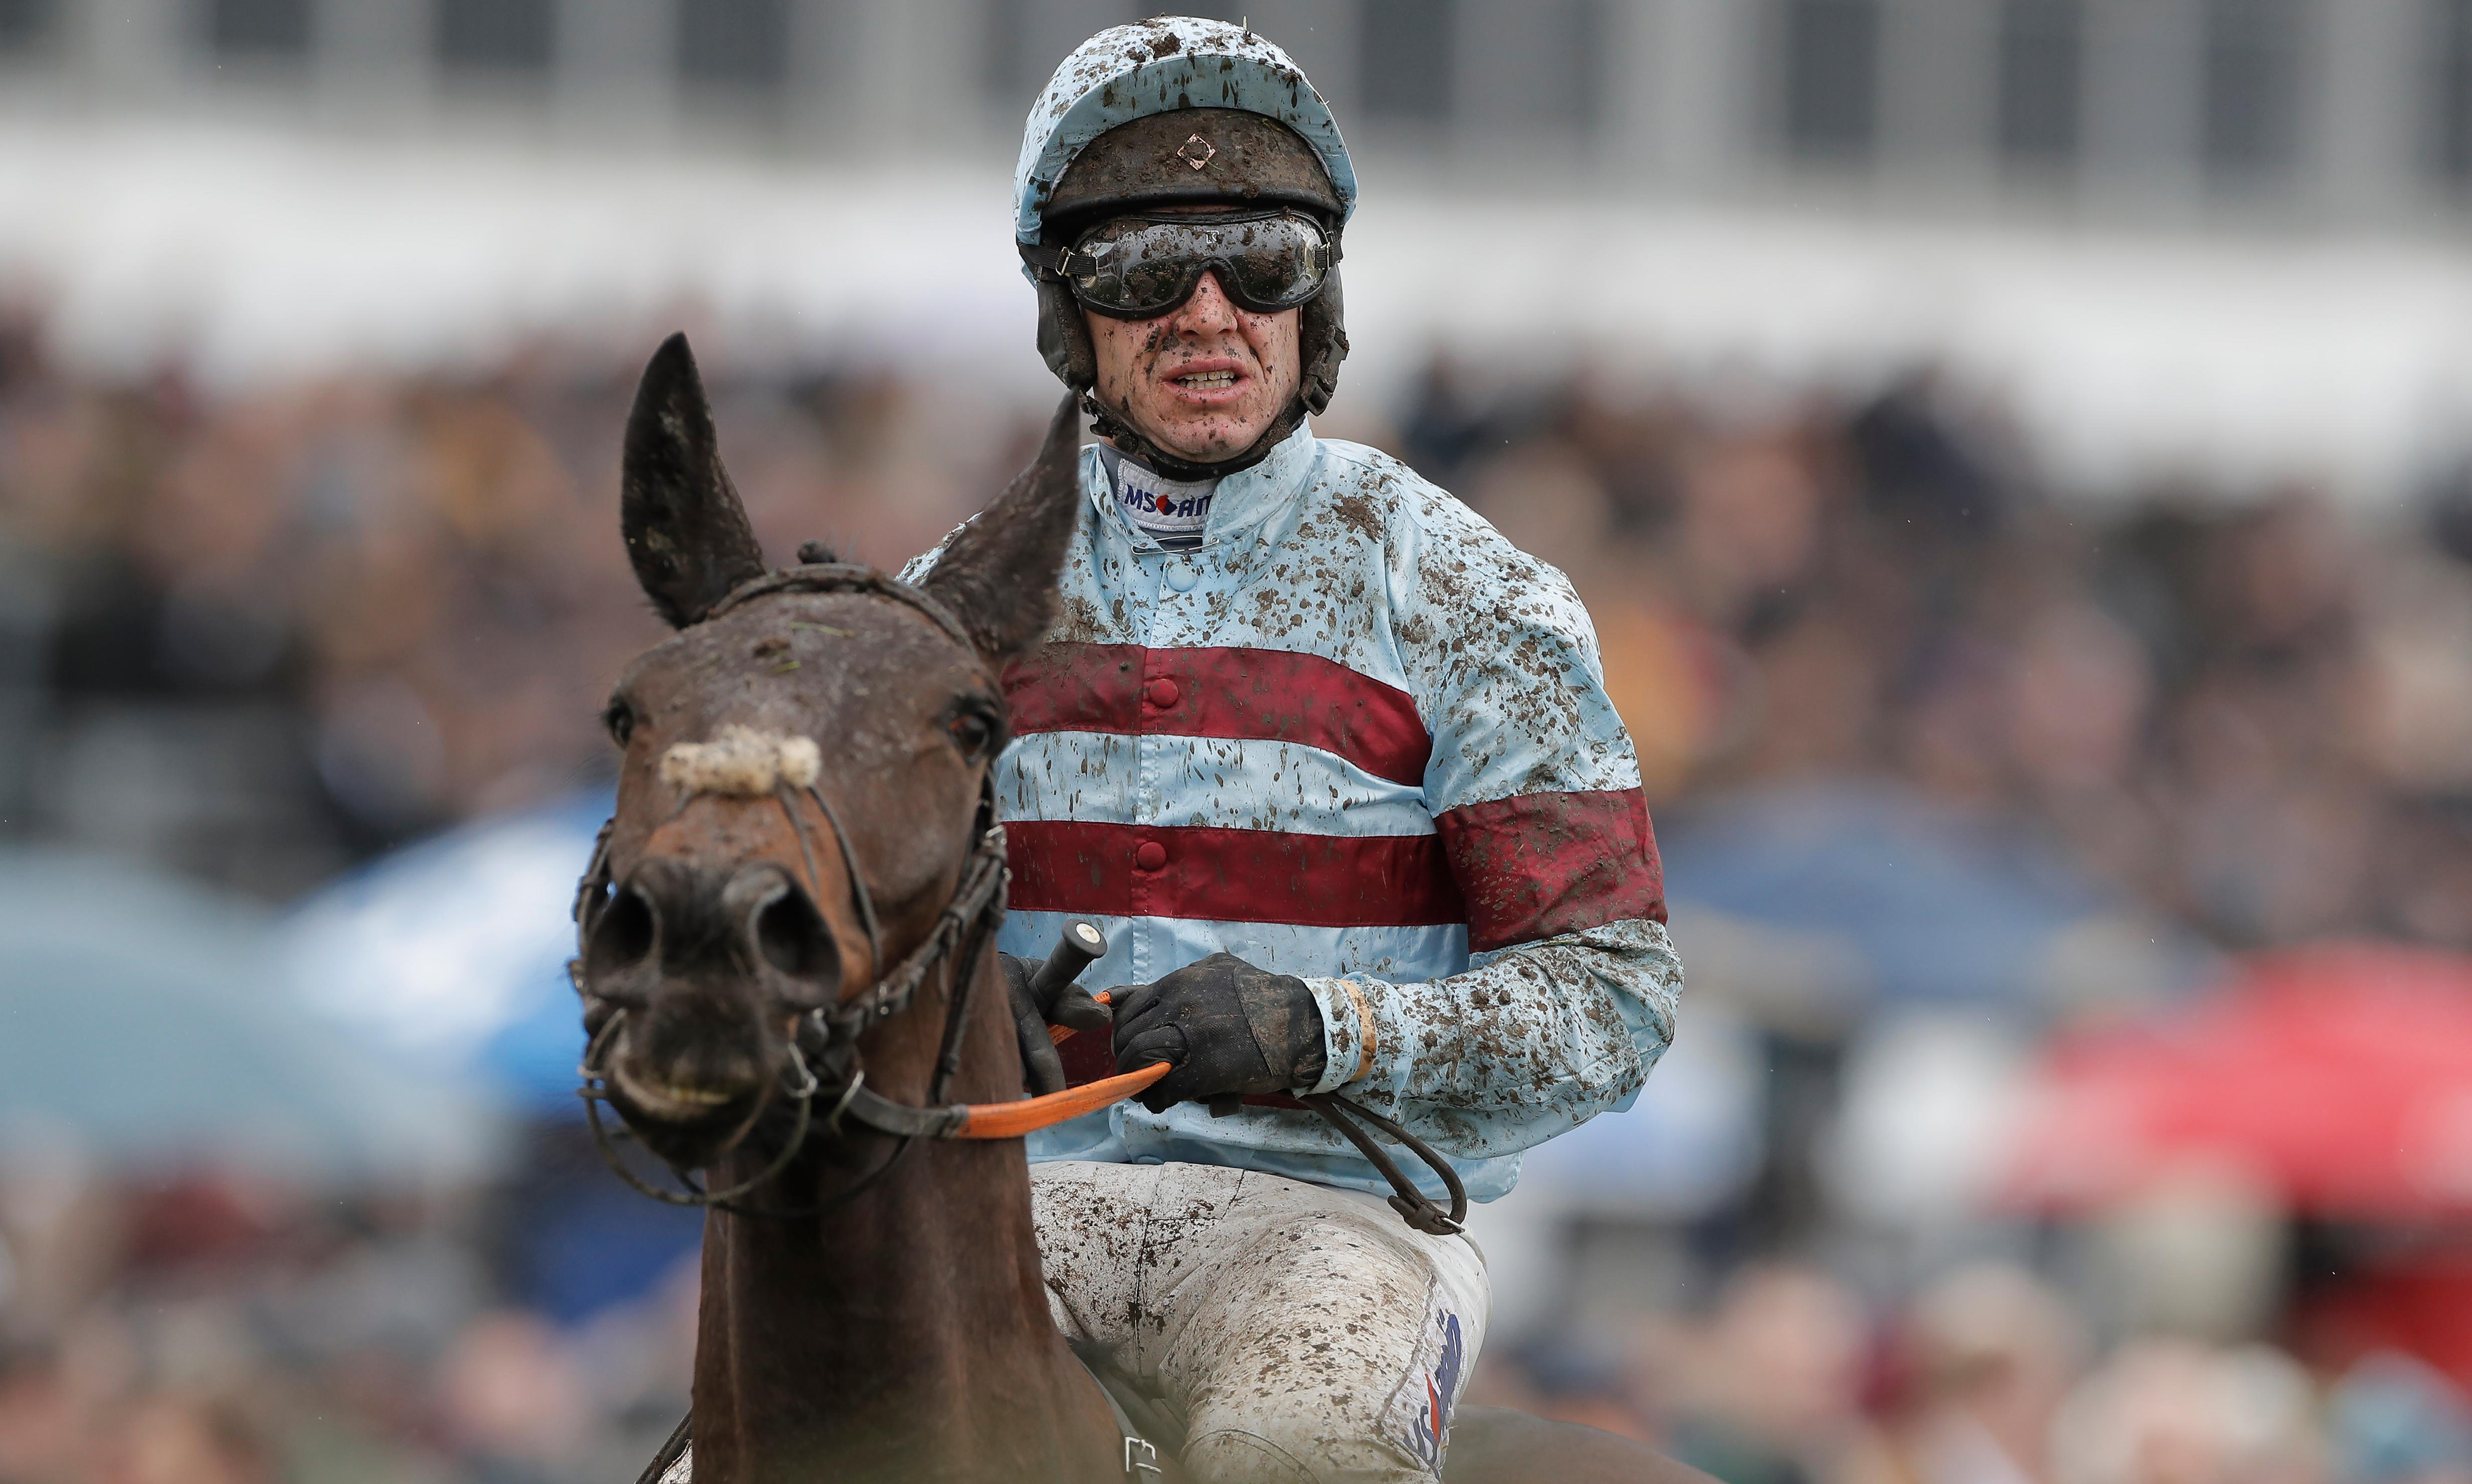 Lalor expected to bounce back at Aintree after lifeless Cheltenham run